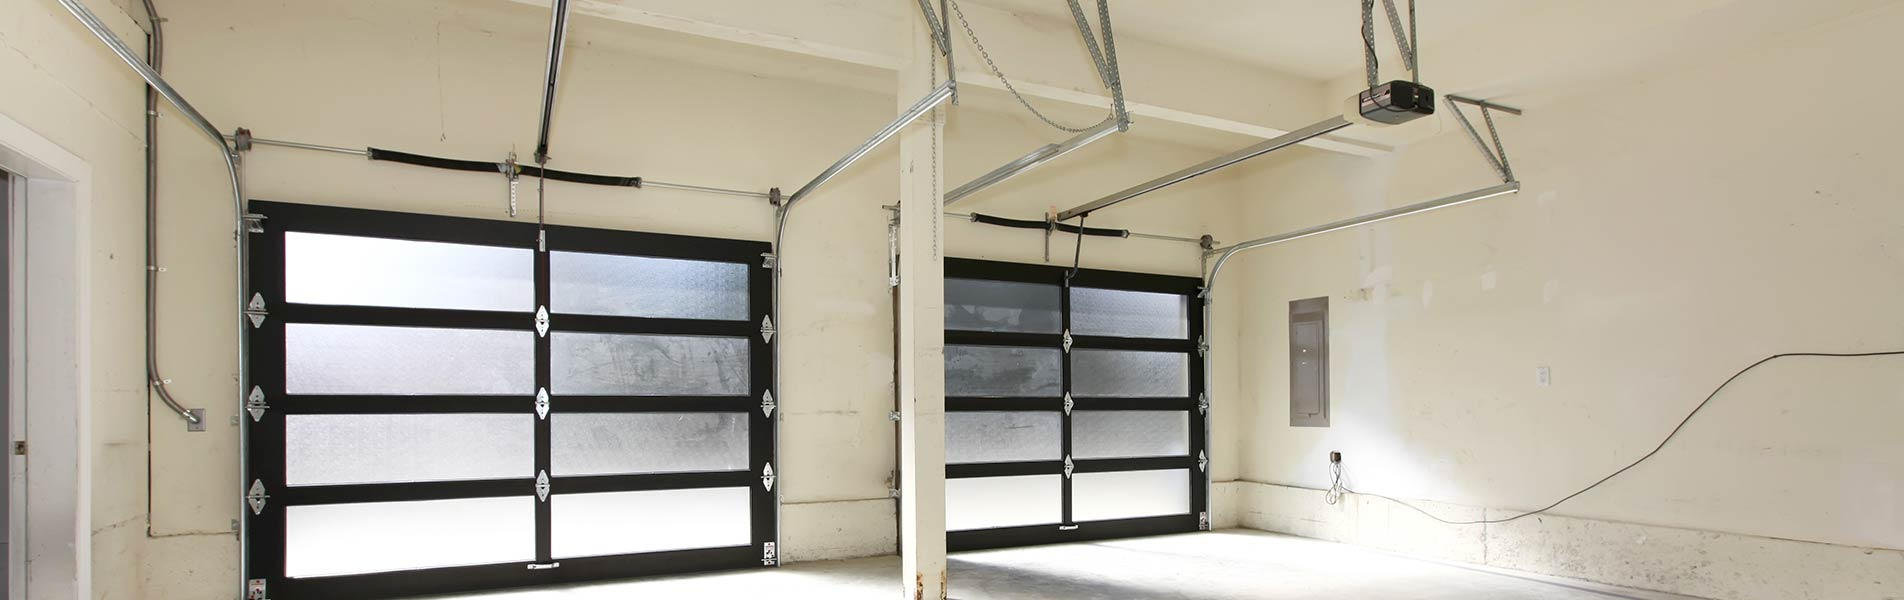 Eagle Garage Door Service Chesterland, OH 440-379-0417